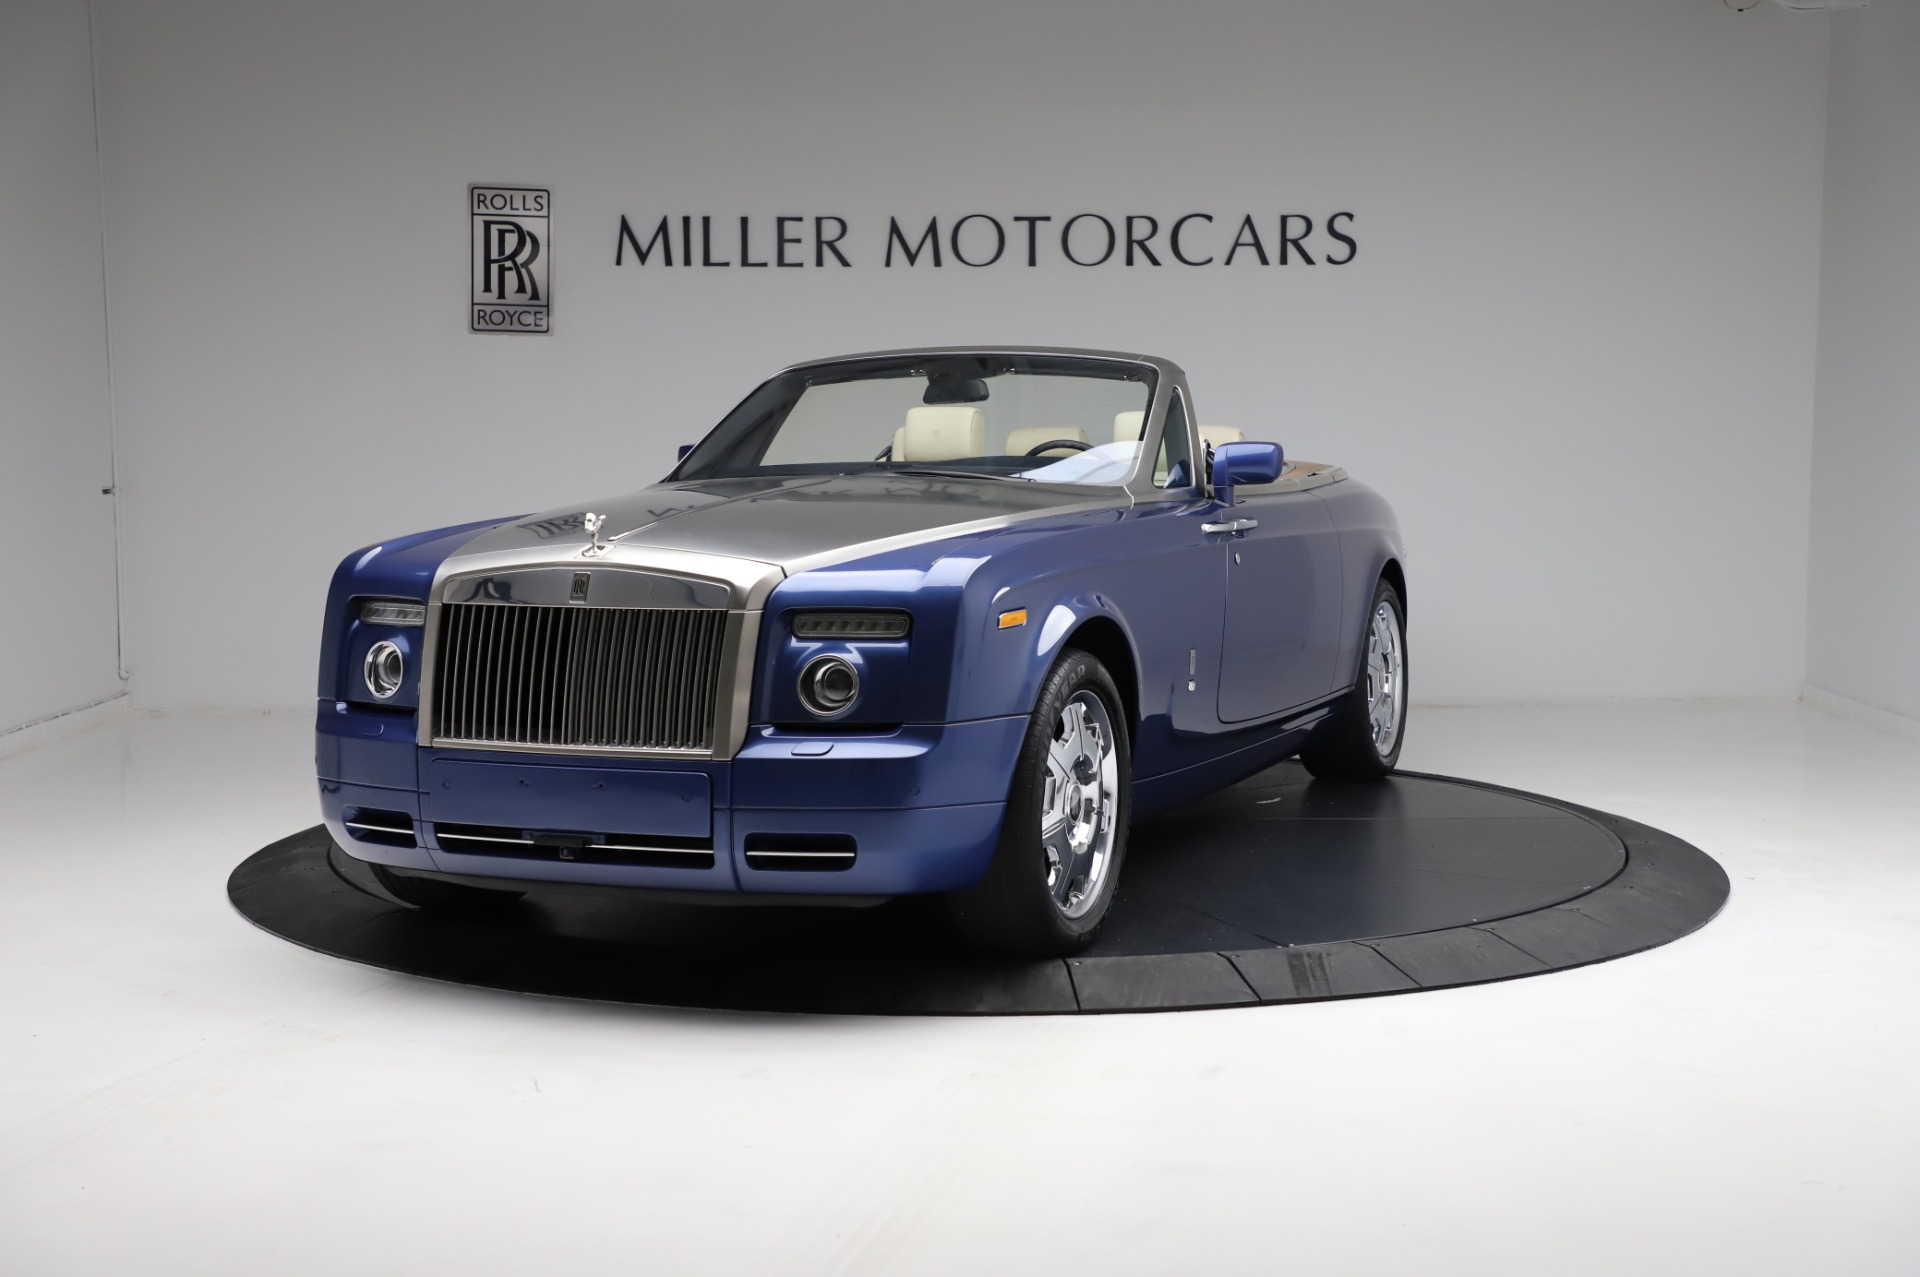 Used 2009 Rolls-Royce Phantom Drophead Coupe for sale $219,900 at Bentley Greenwich in Greenwich CT 06830 1